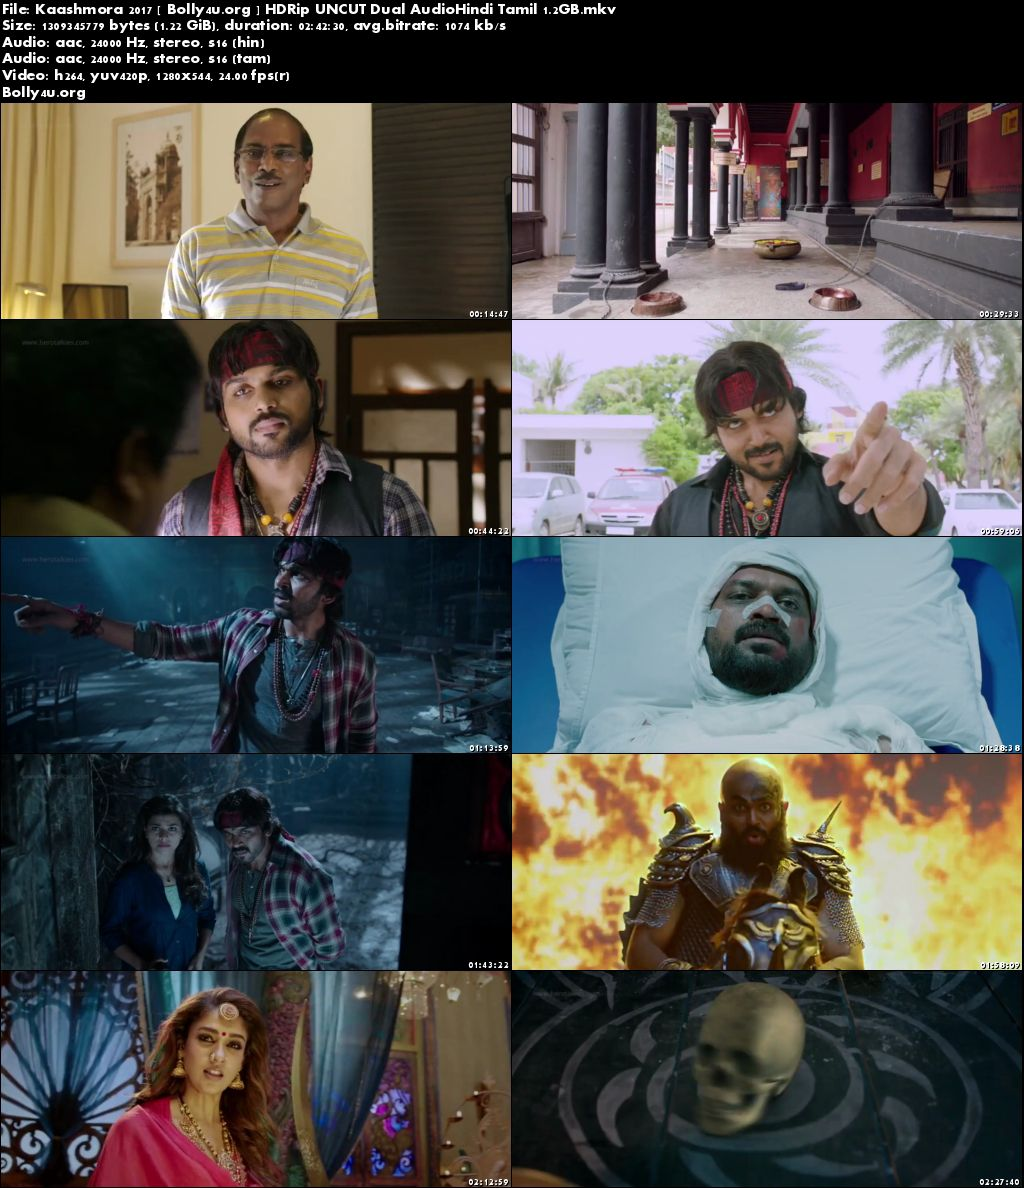 Kaashmora 2017 HDRip 500MB UNCUT Hindi Dual Audio 480p Download